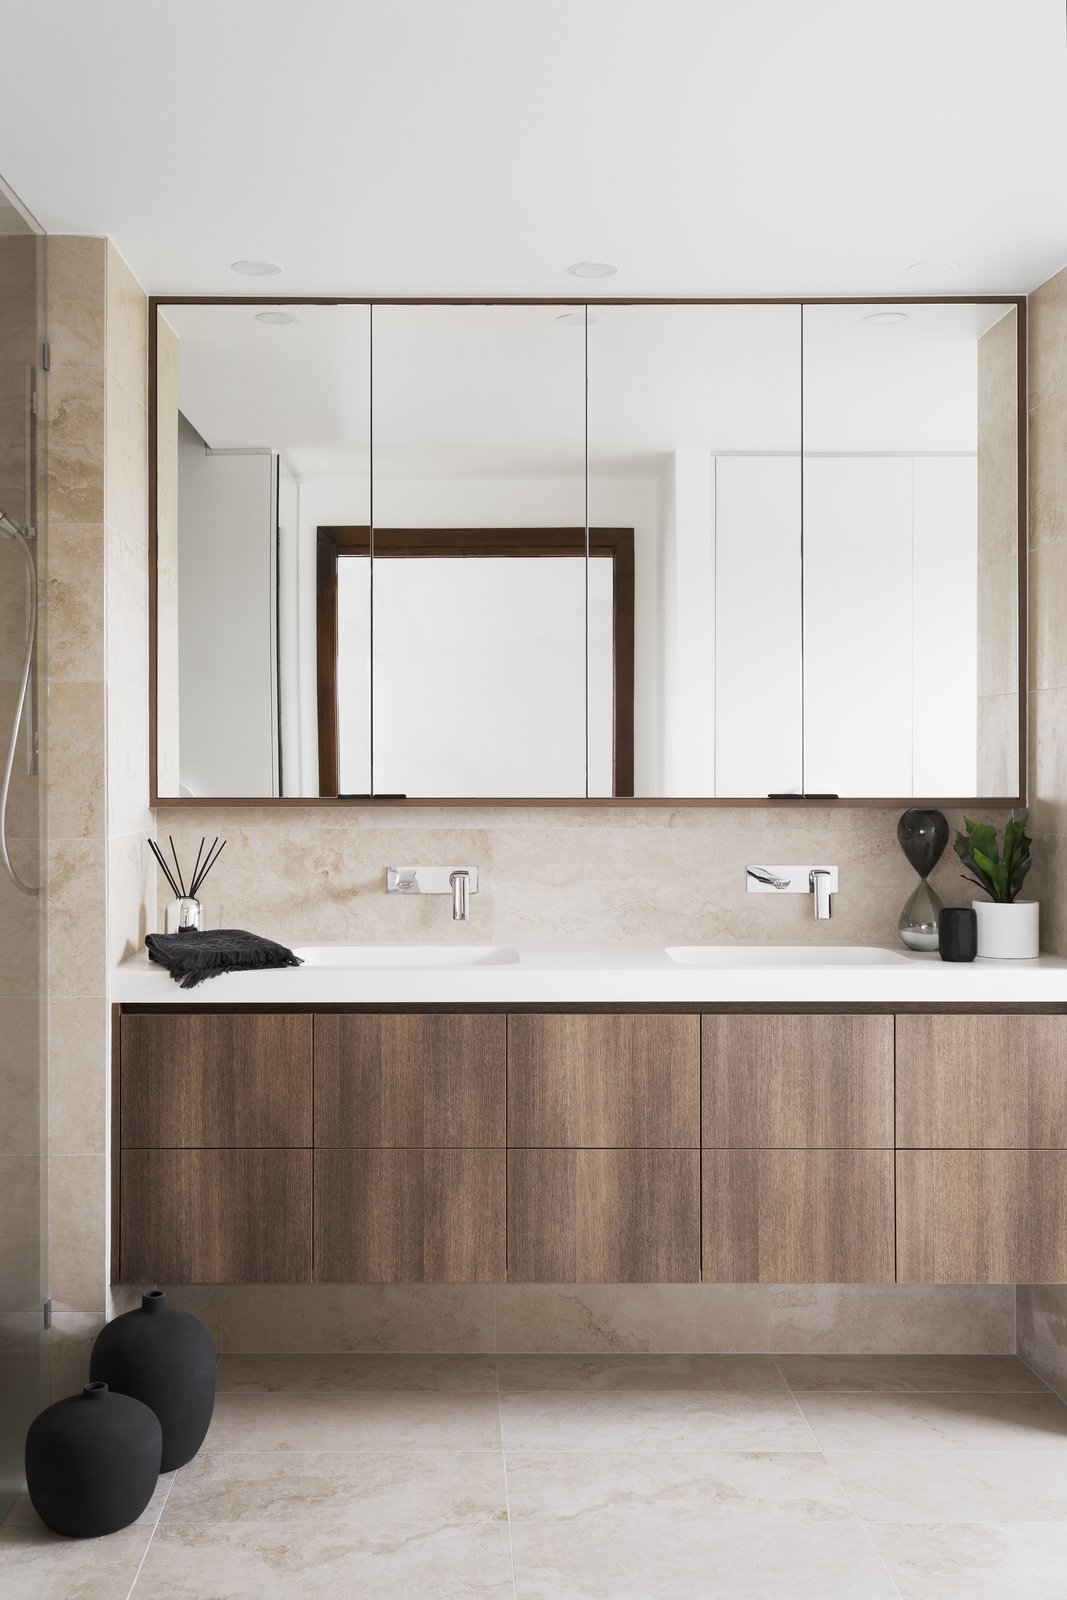 6 Insider Tips For Bathroom Design From the Experts - Dwell